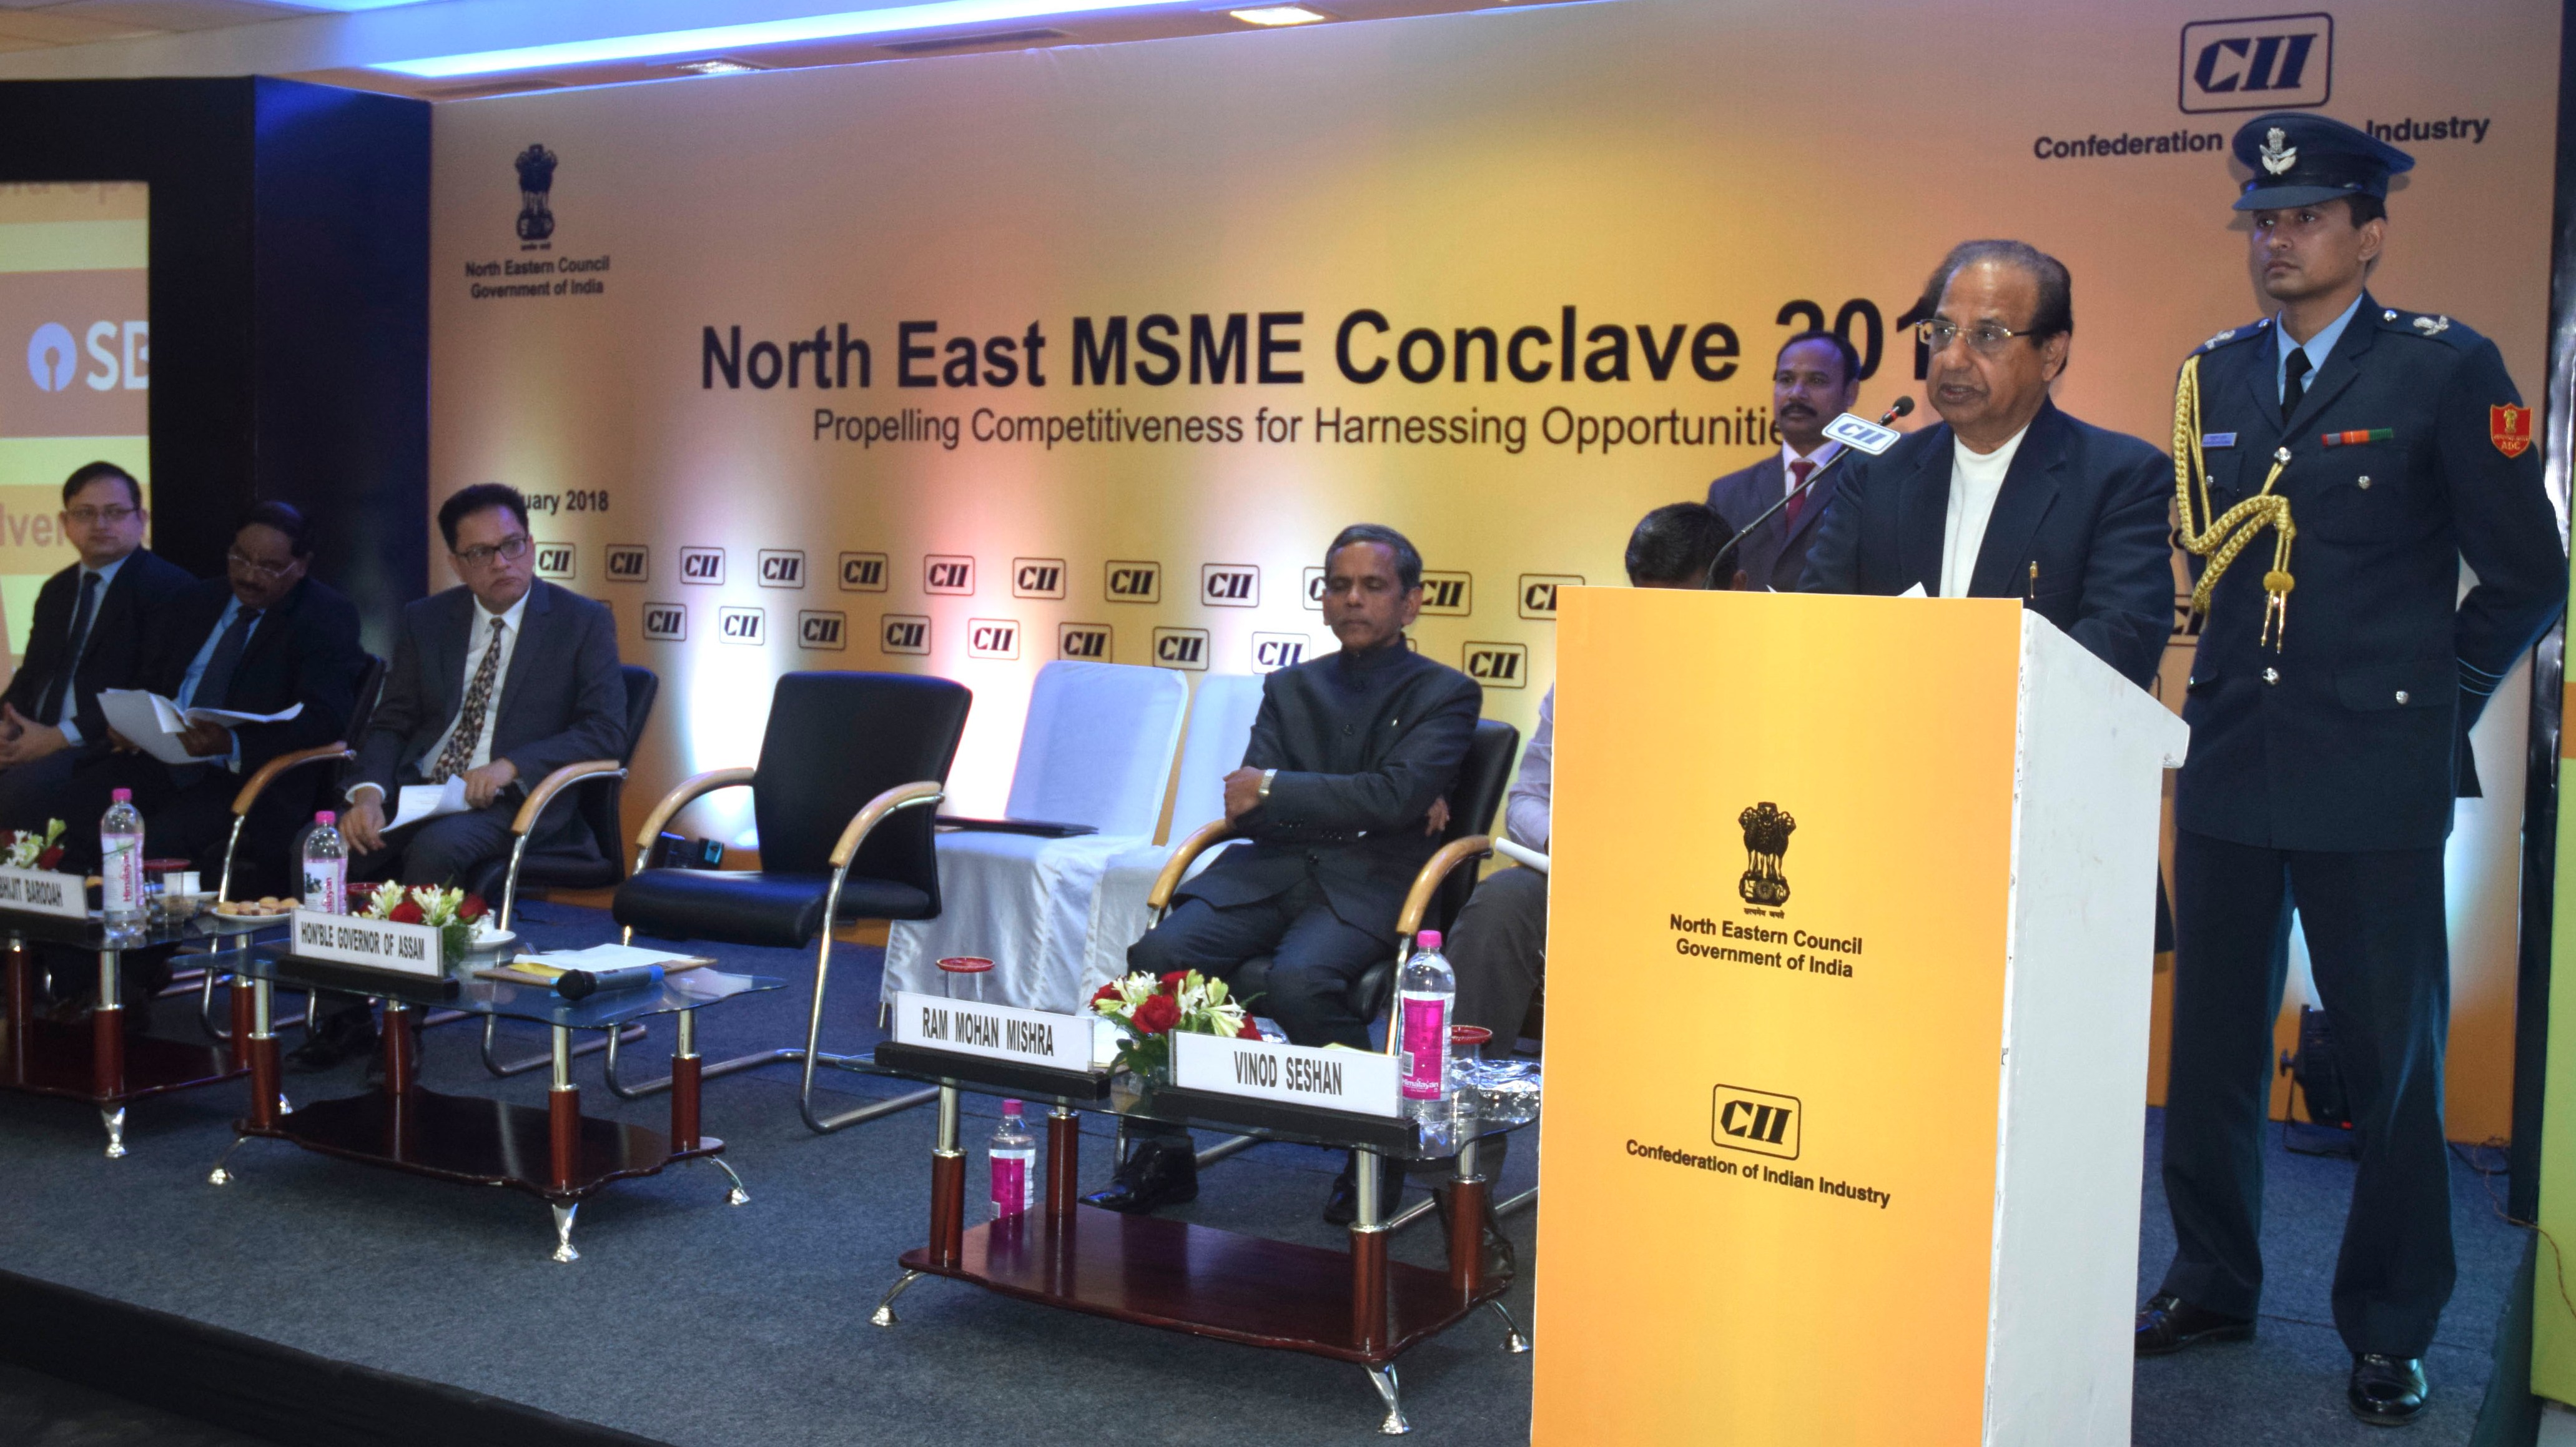 Assam Governor addressing the North East MSME Conclave in Guwahati